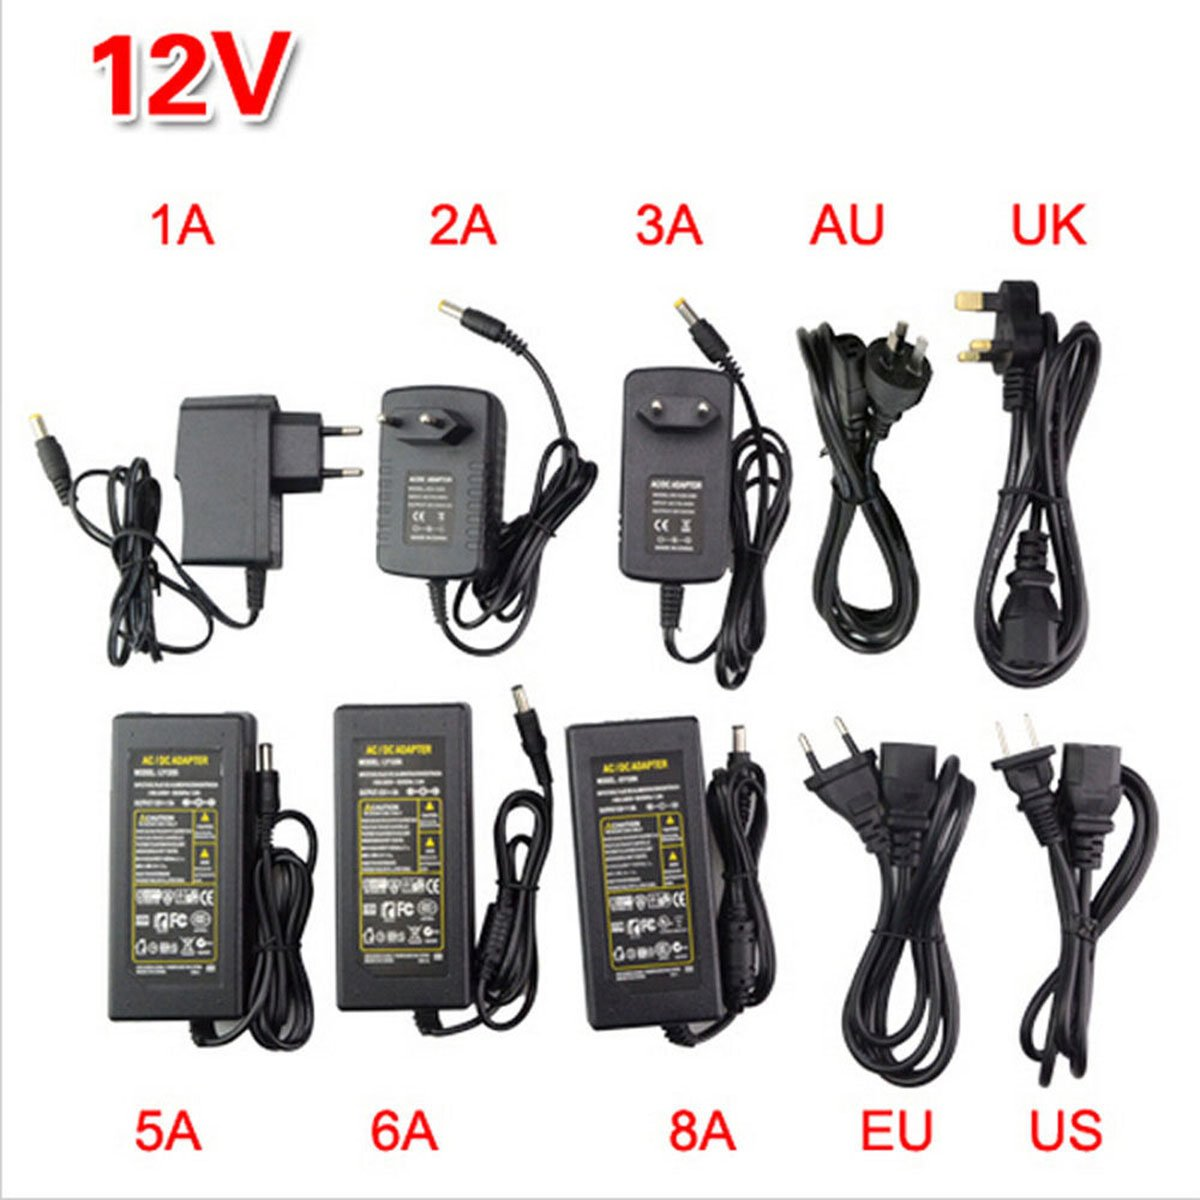 AC100-240V to DC 5V 12V 24V Power Supply Charger Transformer LED Strips Adapter